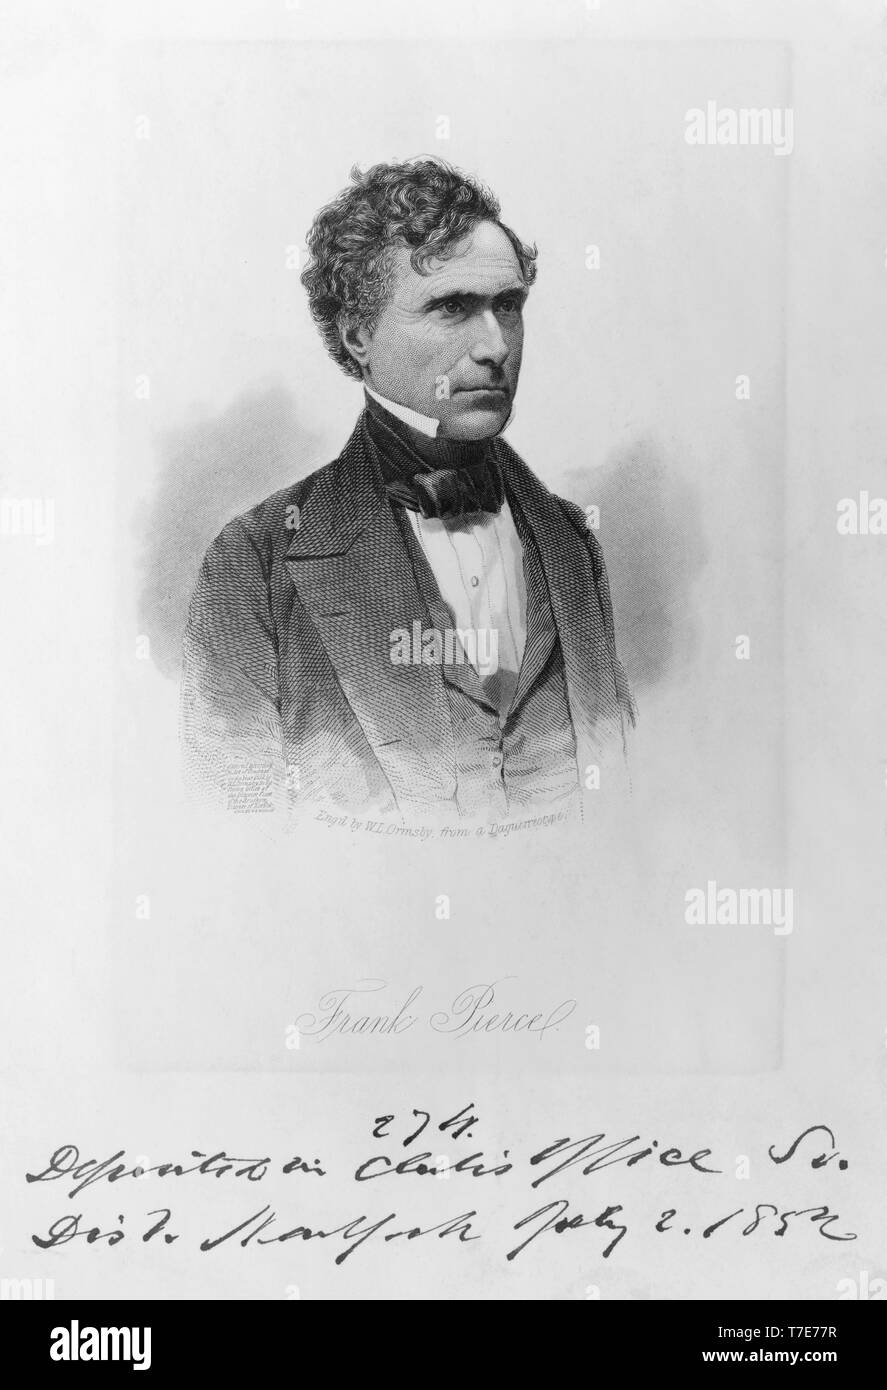 Franklin Pierce (1804-1869), 14th President of the United States, Head and Shoulders Portrait, Engraving by W.L. Ormsby from a Daguerreotype, 1852 - Stock Image